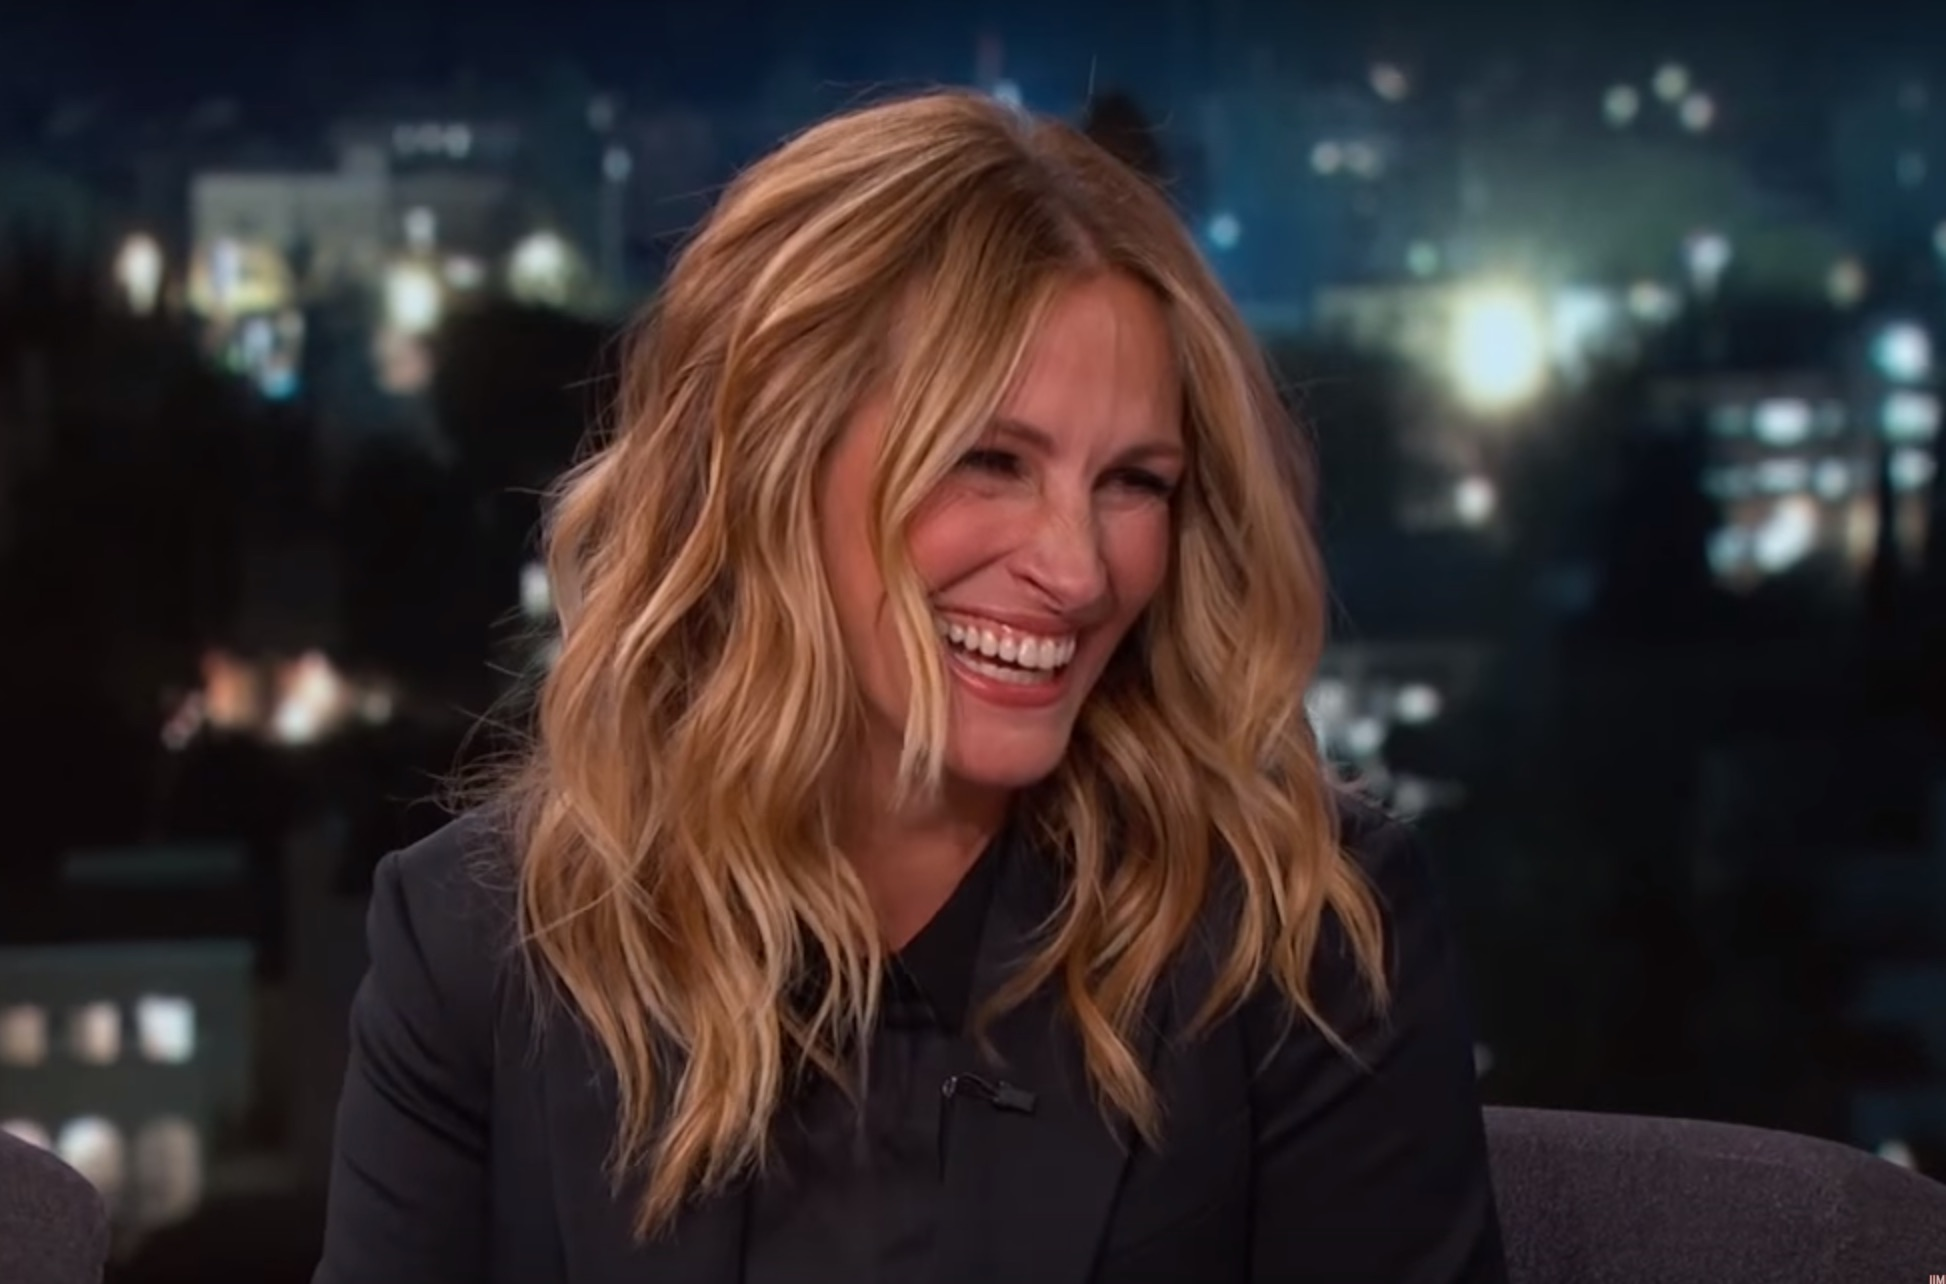 Julia Roberts recalls the first time she was recognized by a fan. Um, it got super awkward.